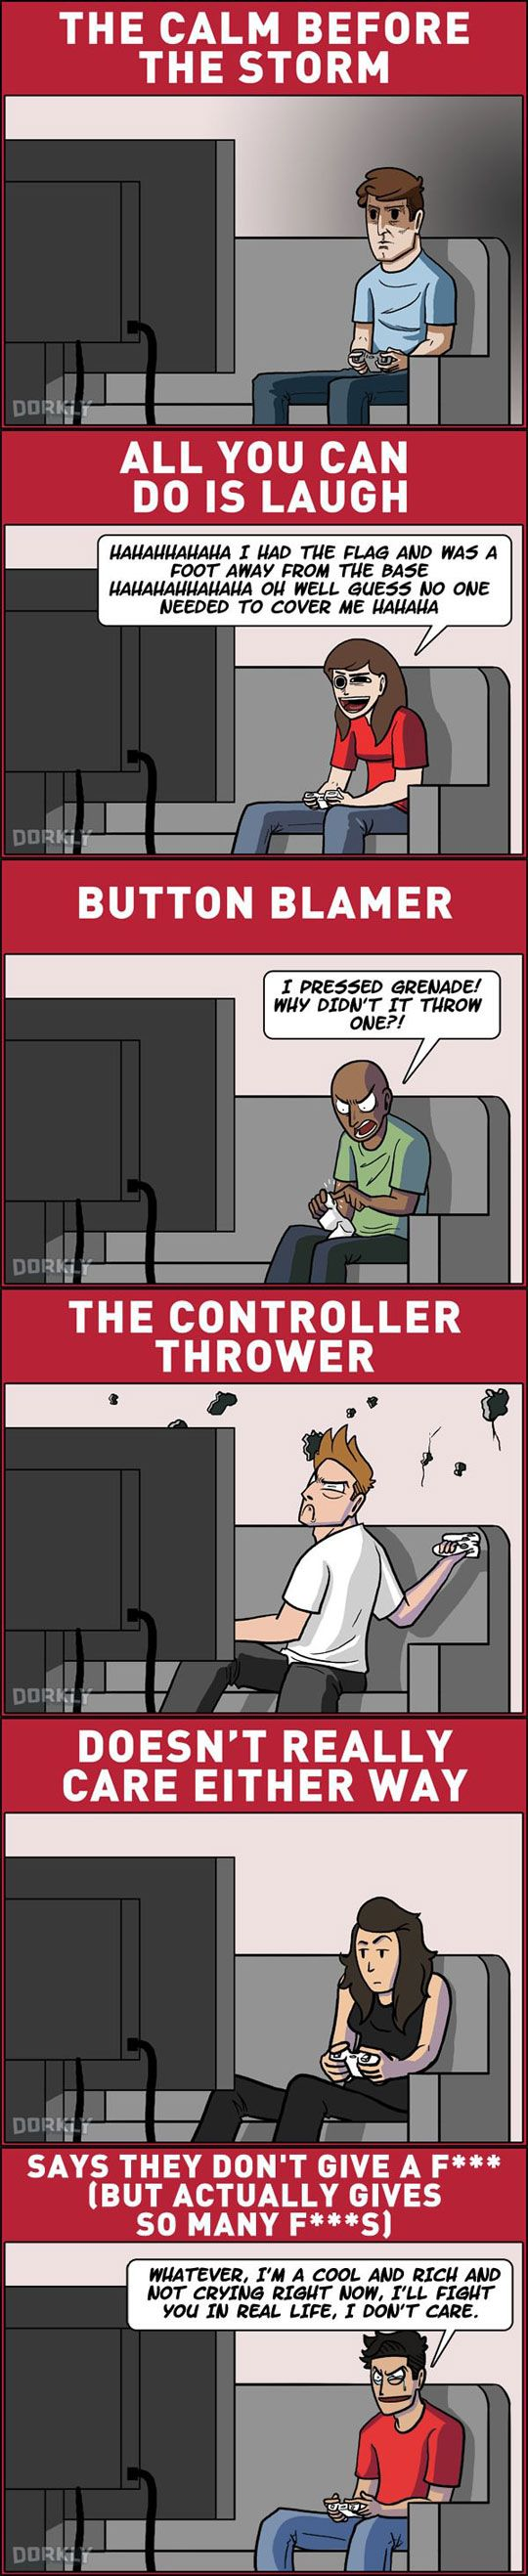 Gamer Reactions To Losing An Online Match I'm like all of those combined, on ANY video game. xD